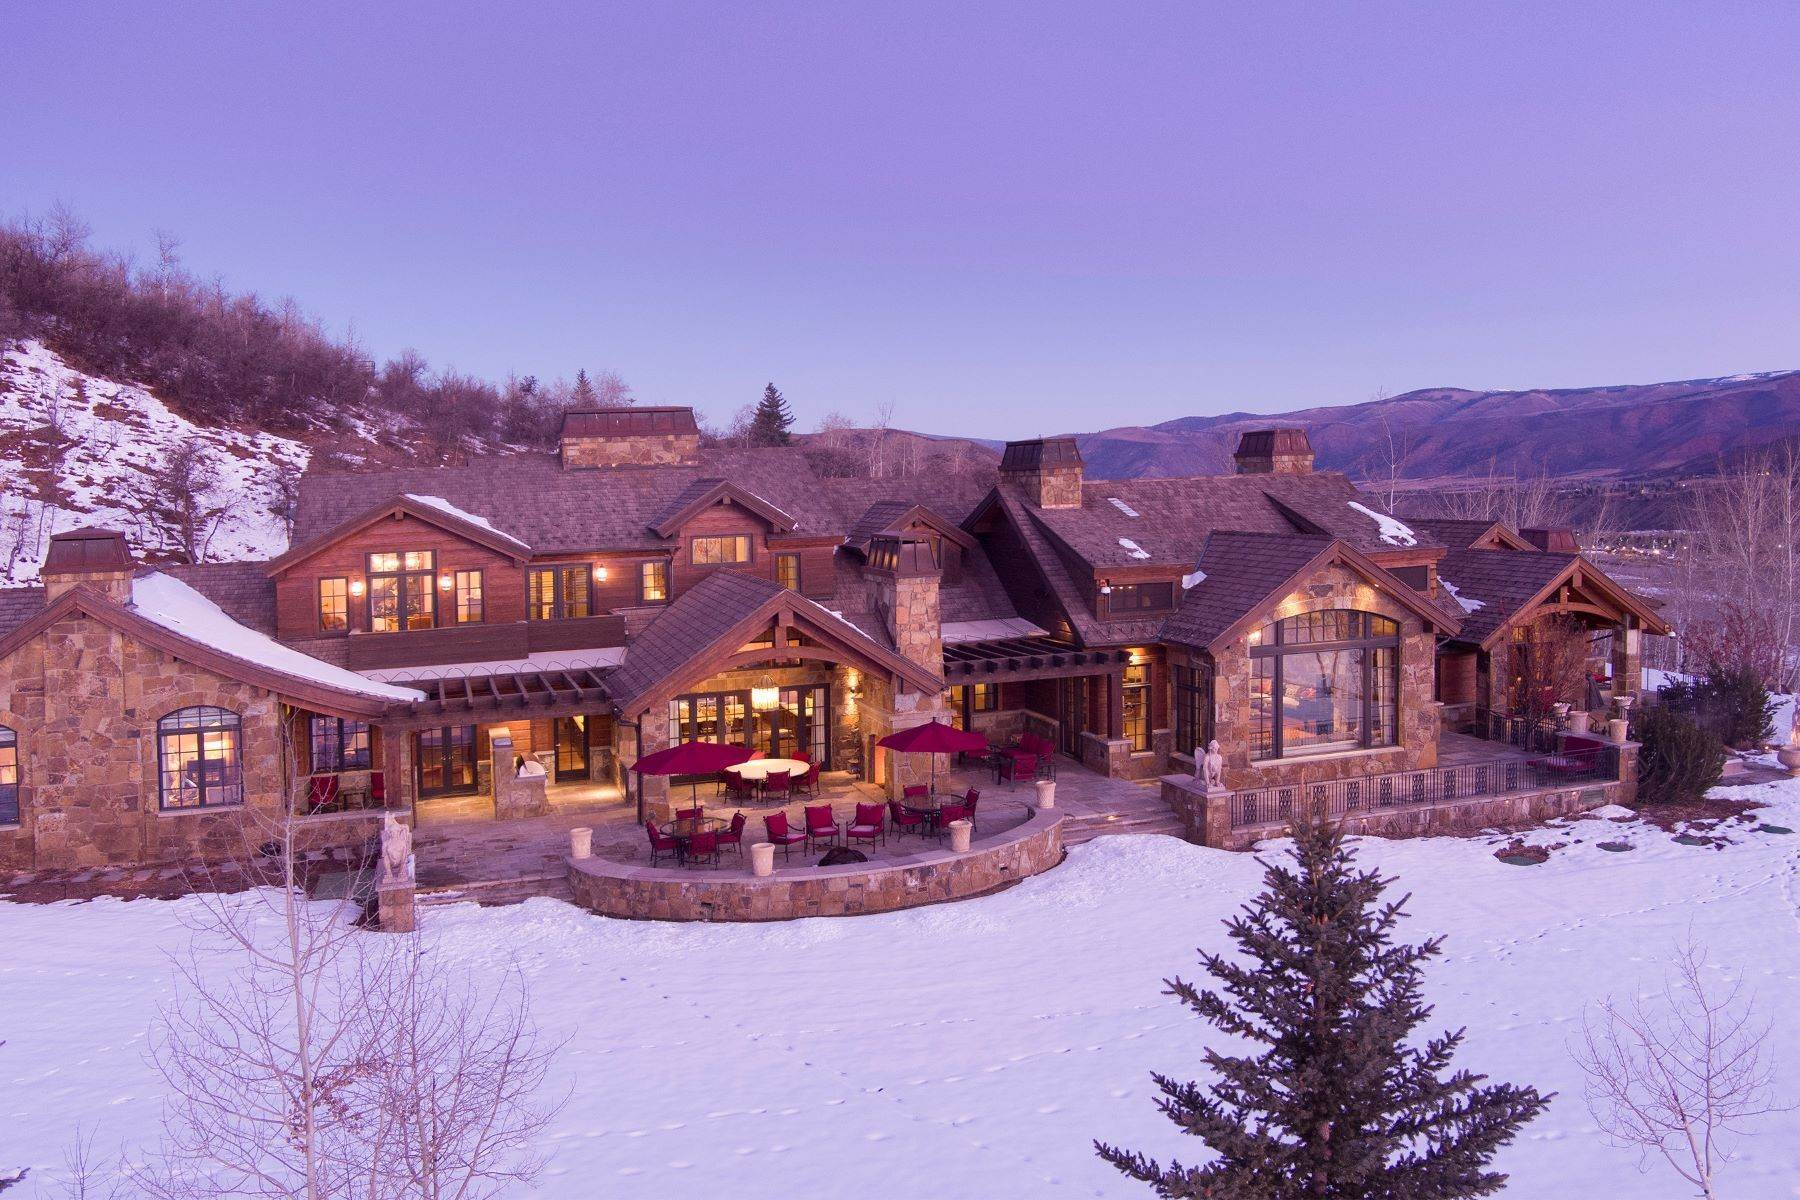 Single Family Homes for Sale at Talk About Ski-In/Ski-Out! 220 Buttermilk Lane Aspen, Colorado 81611 United States